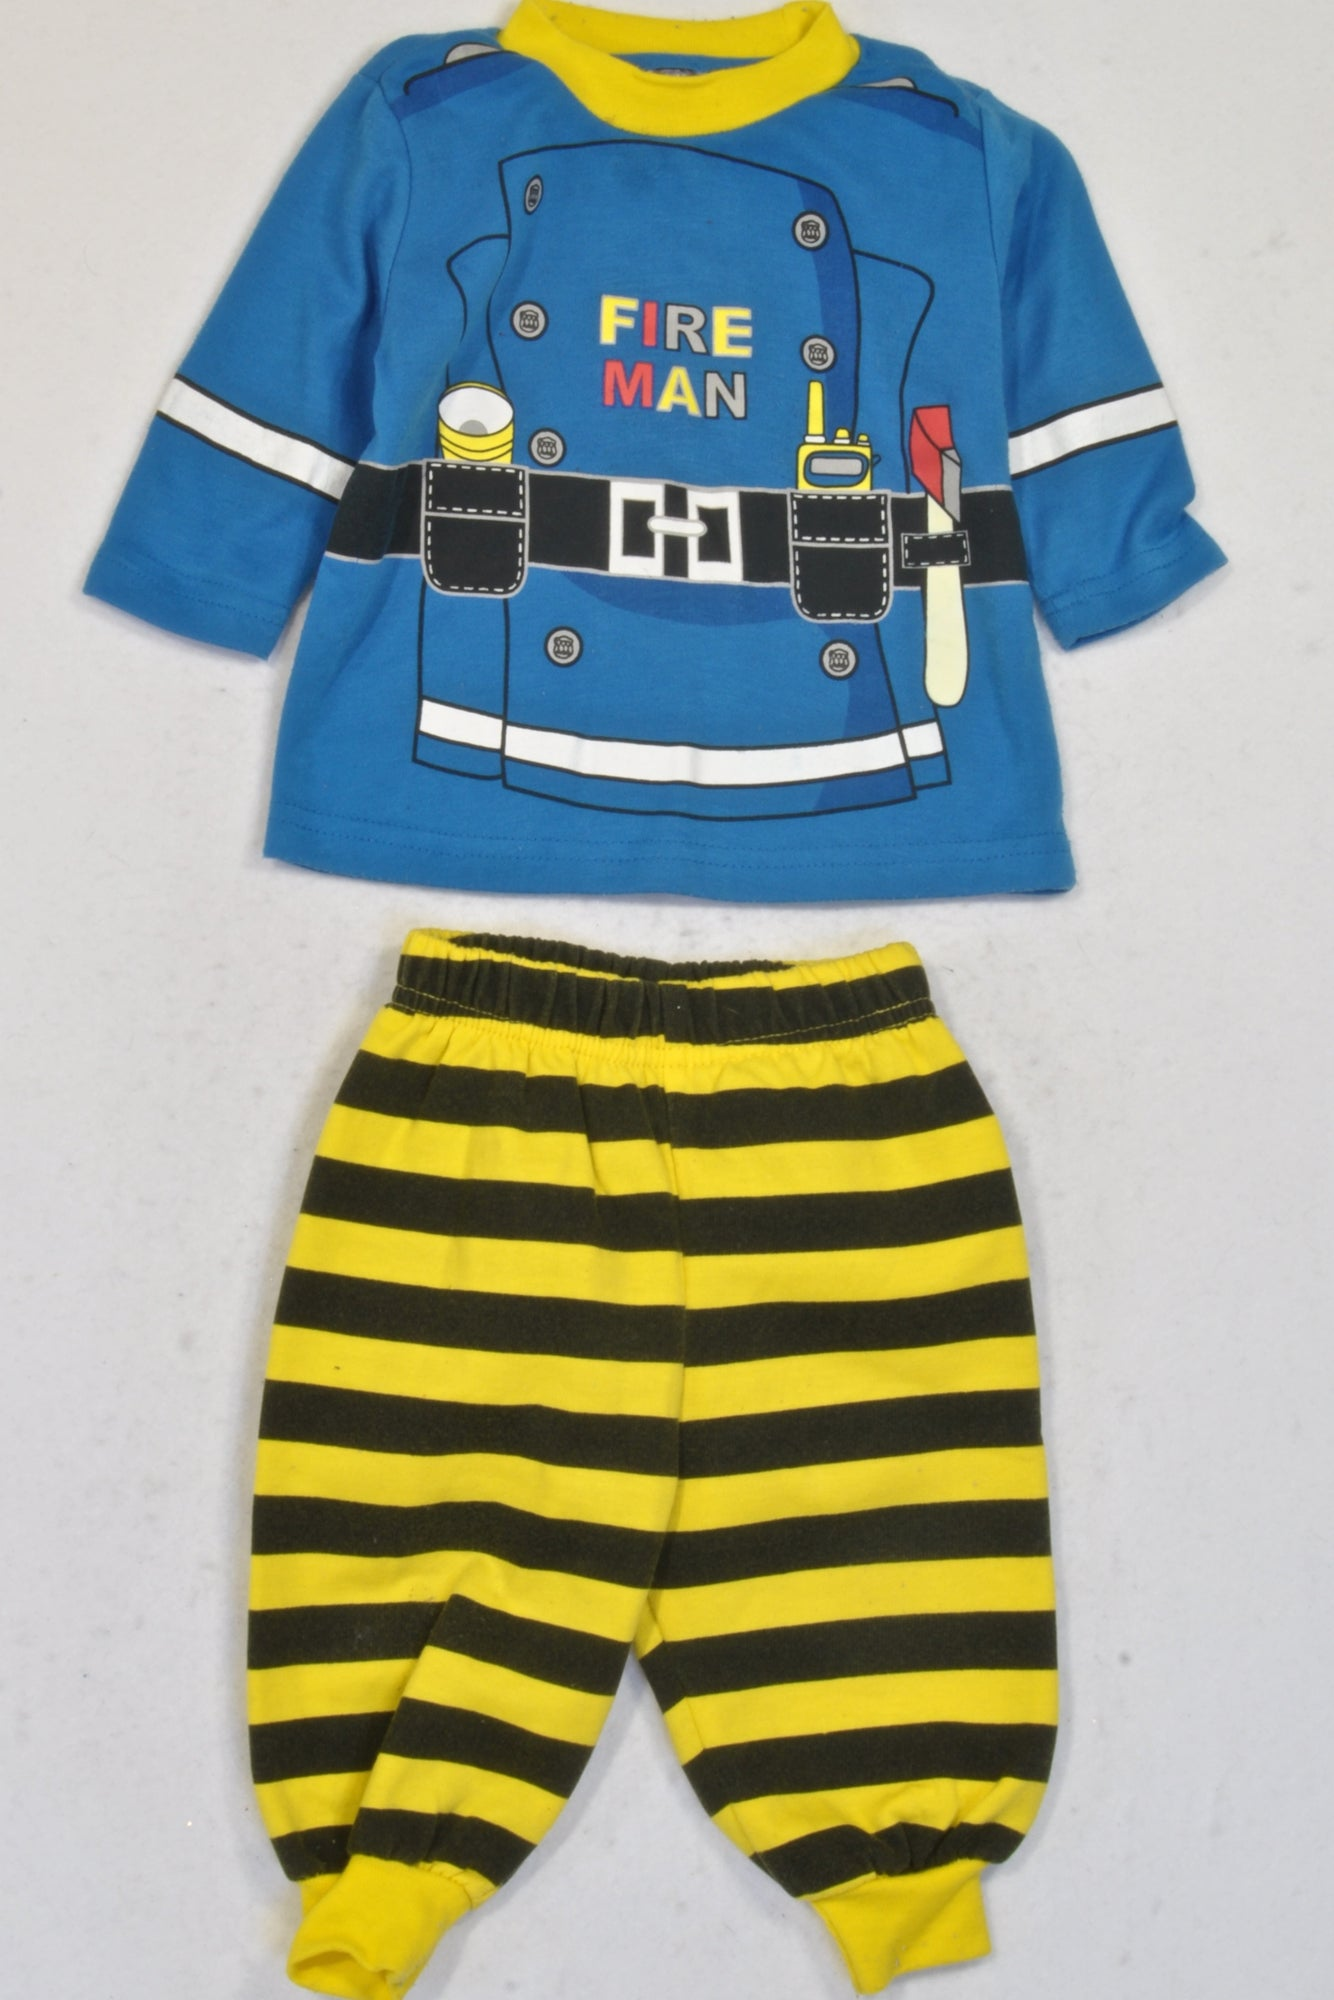 Ackermans Fire Man Top & Pants Pyjamas Boys 3-6 months